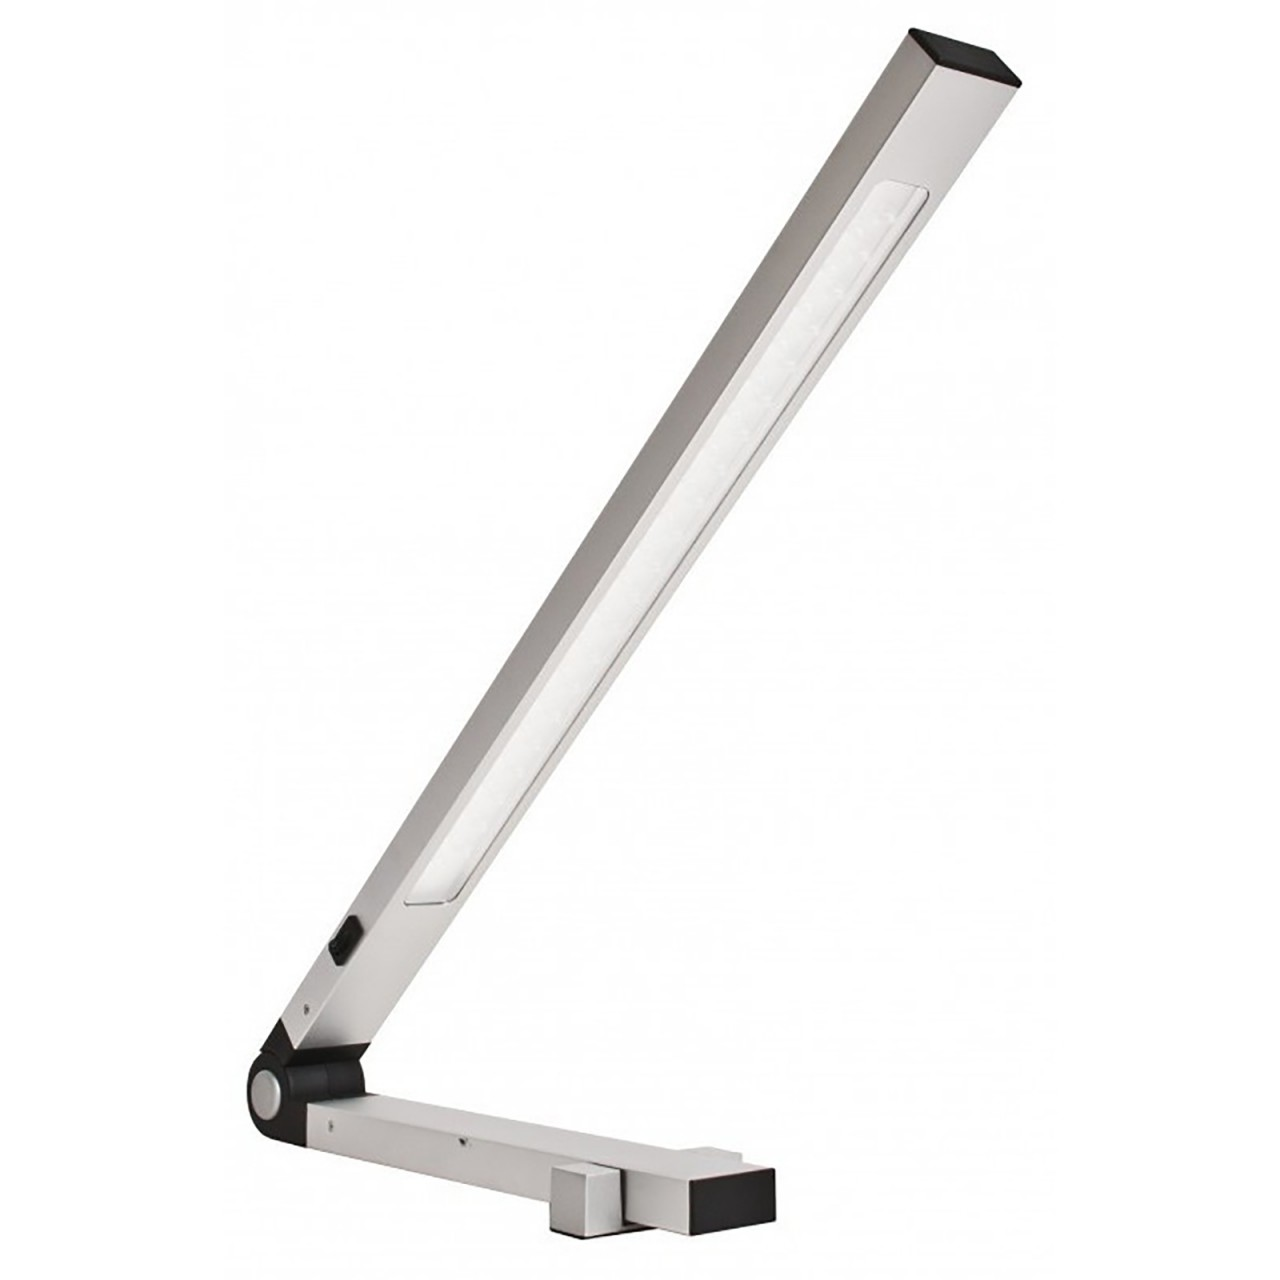 Modern LED-Desk lamp SILVER DESIGN SD 817, collapsible